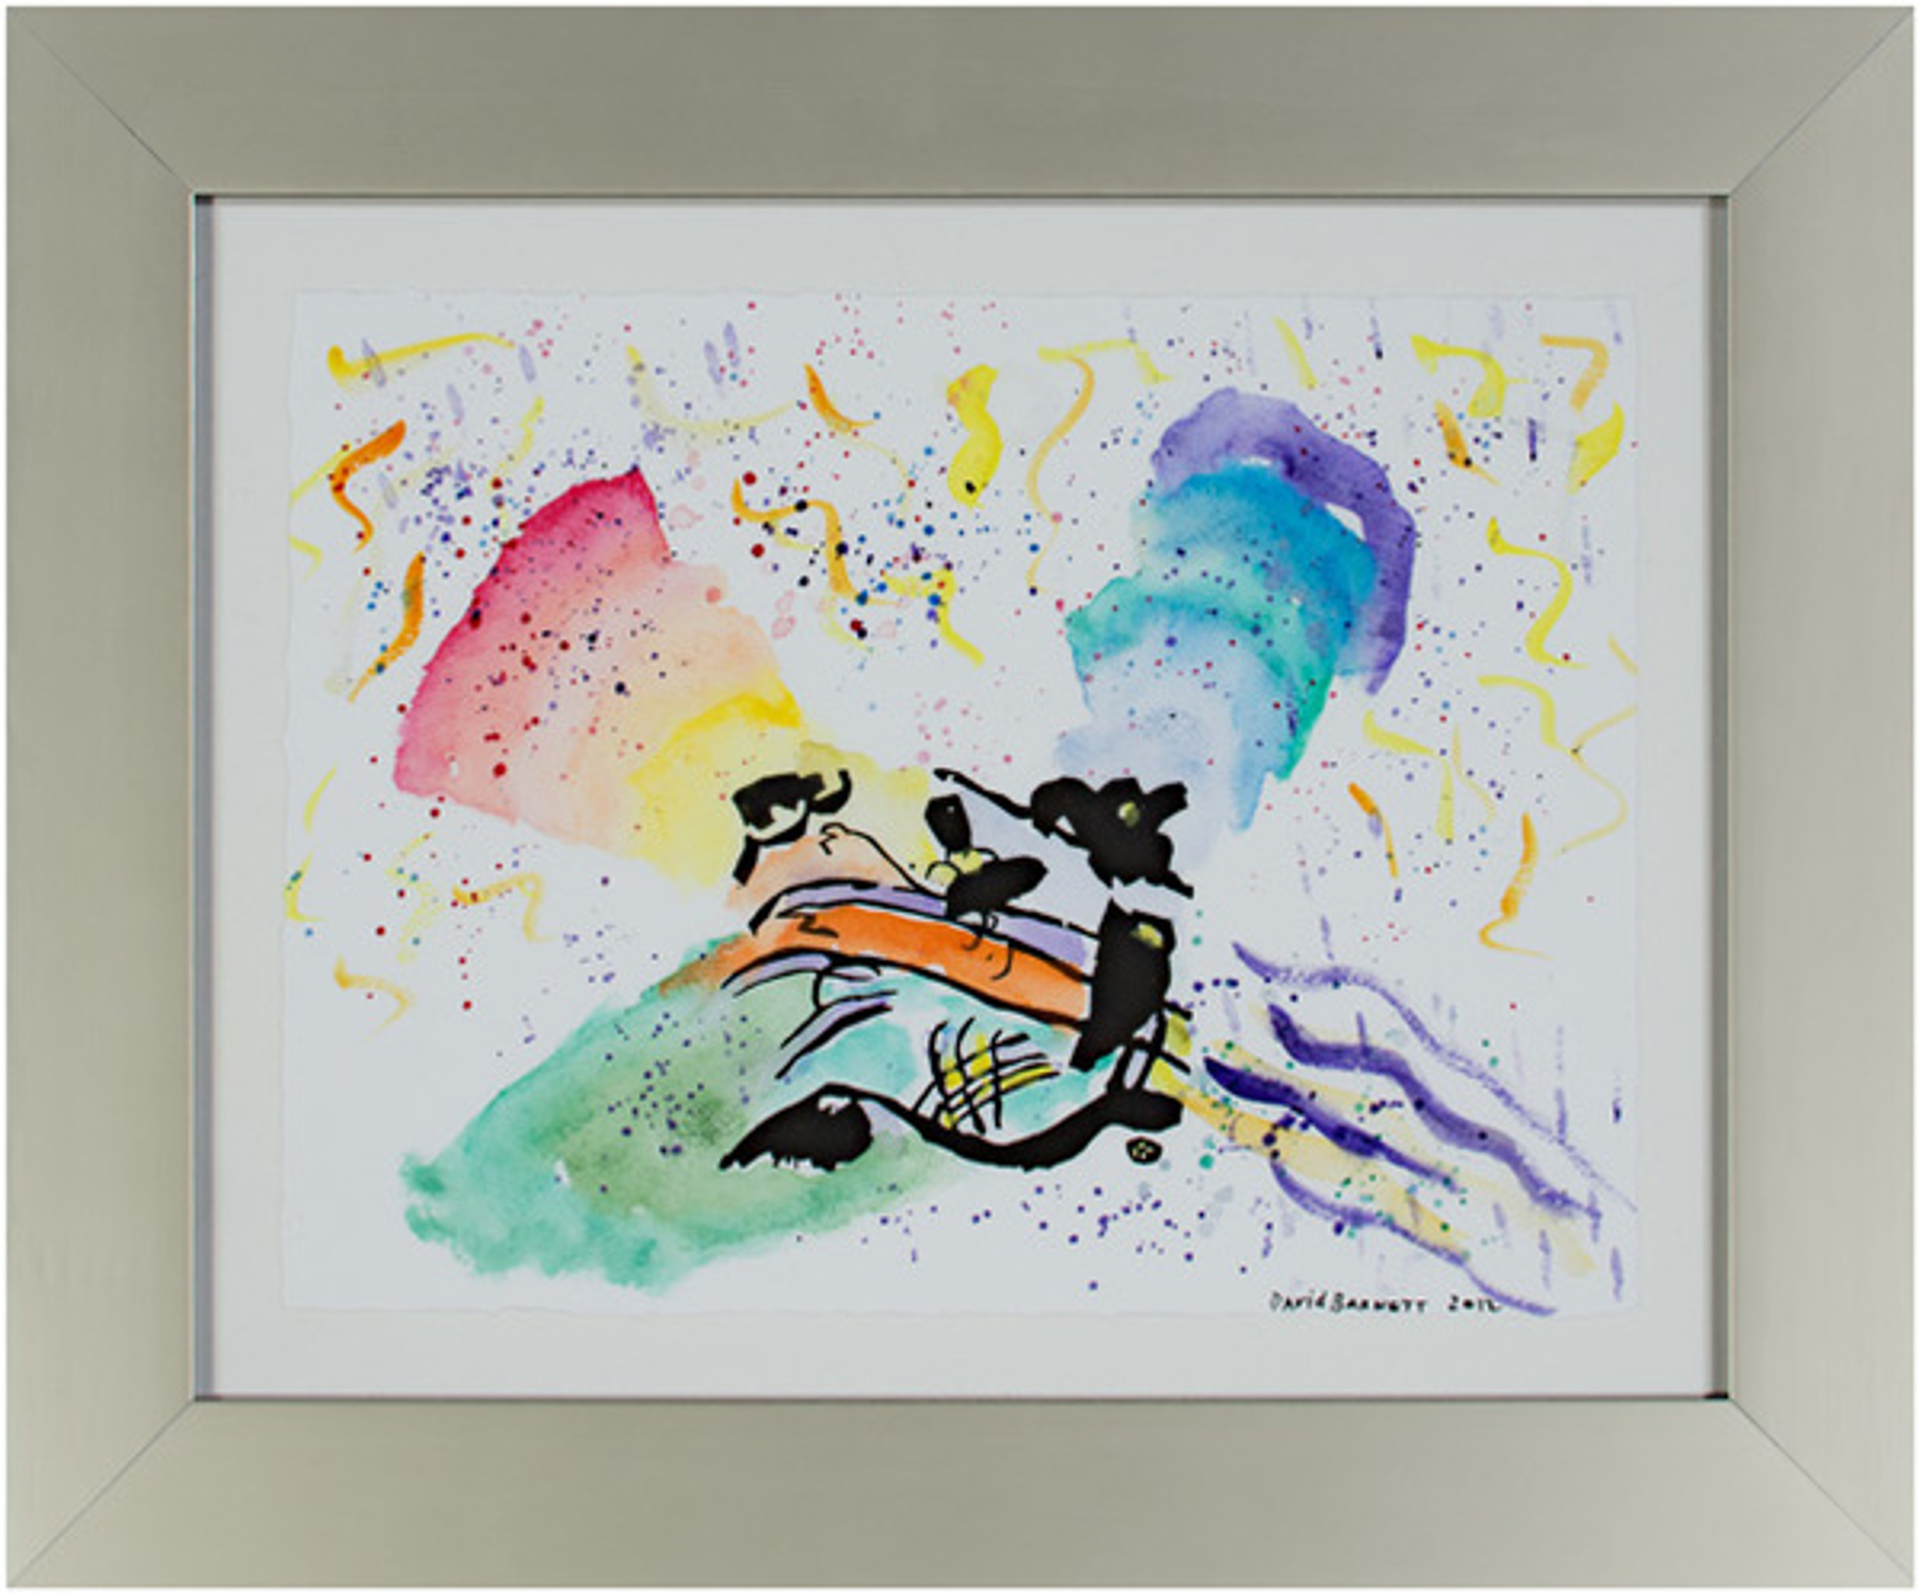 """Famous Artist Series: Homage to Wassily Kandinsky after 1911 """"Exit"""" woodcut from Klange (Sounds) Ser. by David Barnett"""